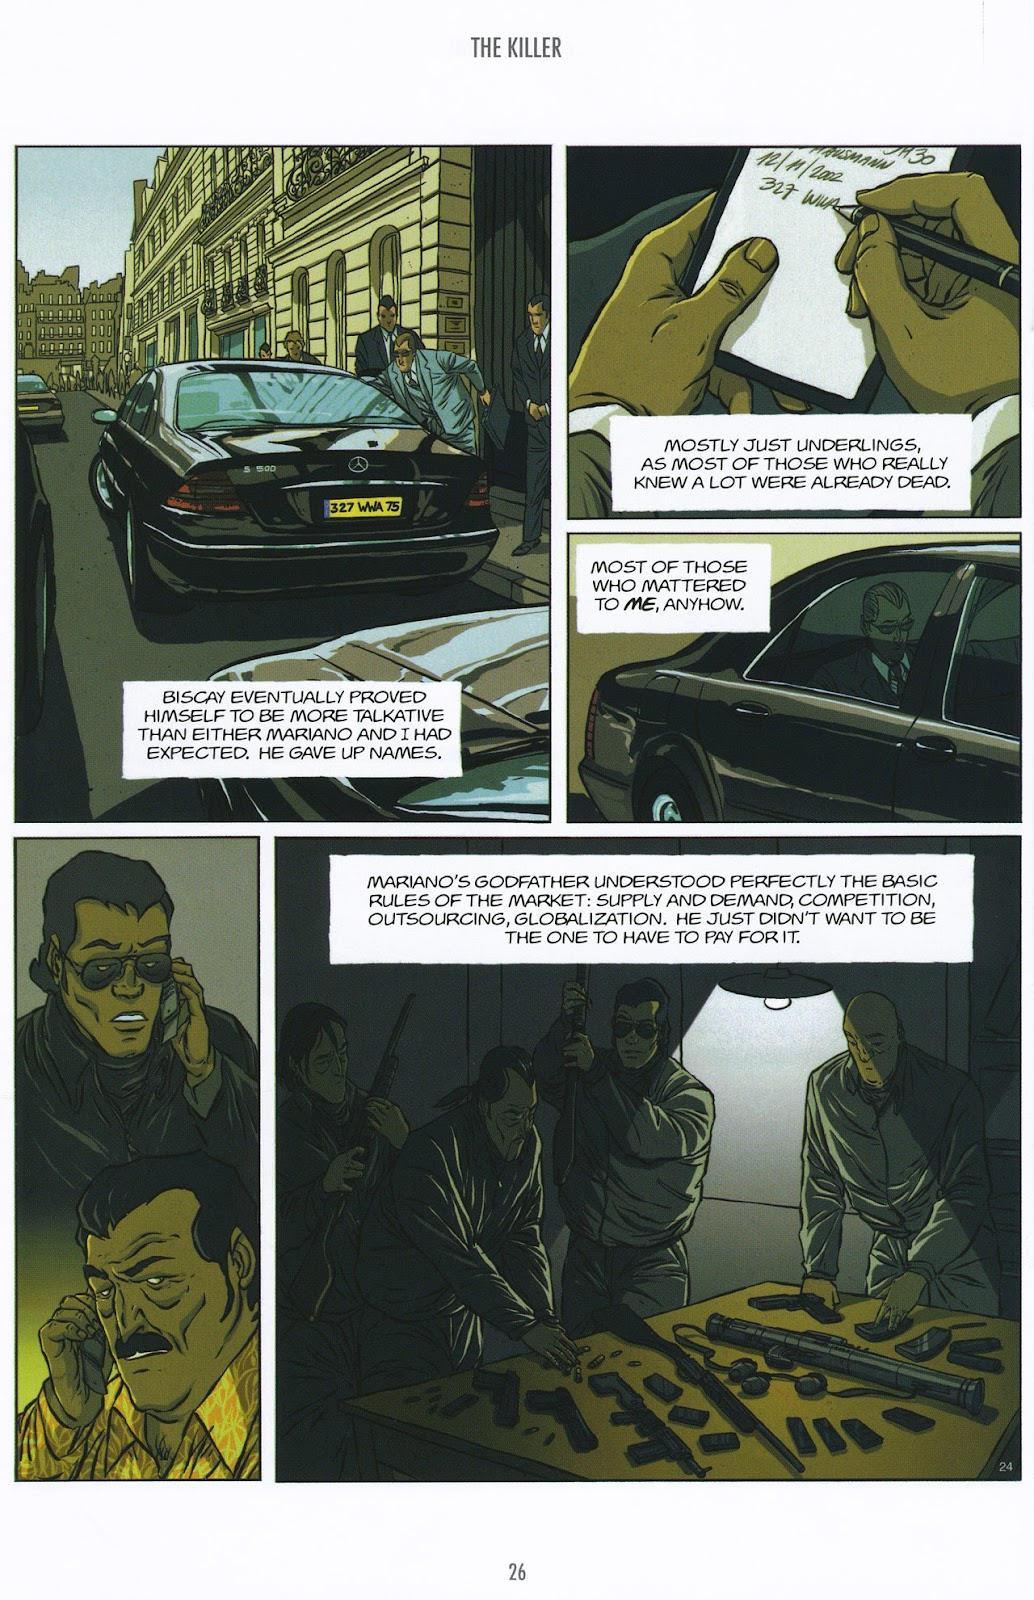 Read online The Killer comic -  Issue #9 - 26